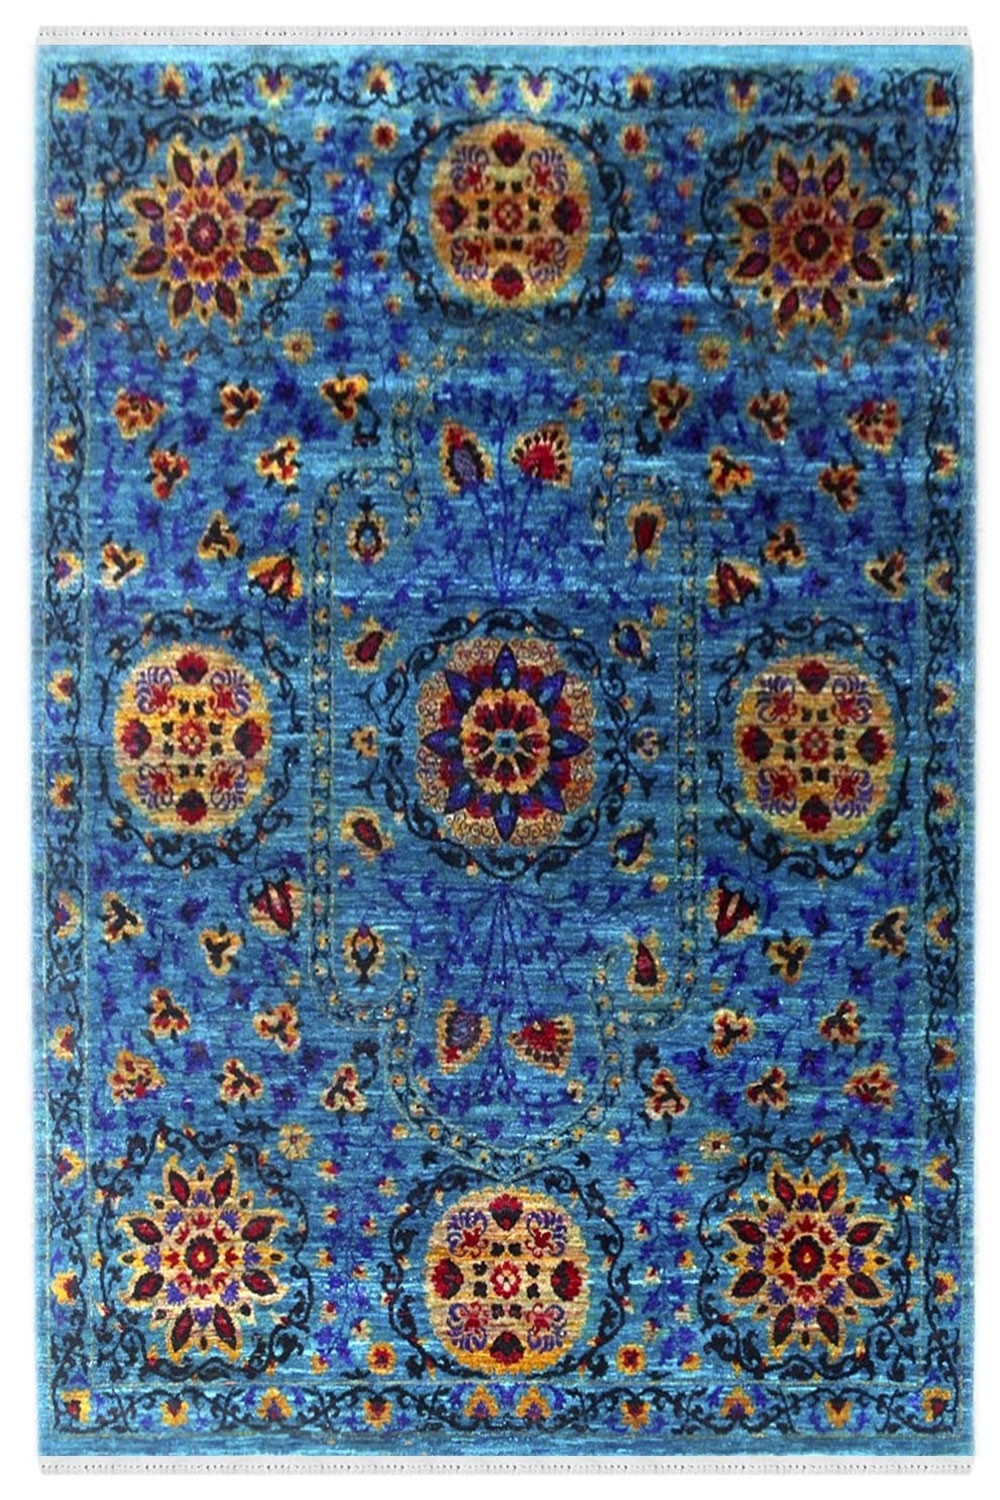 Sunshine Flower Stunning Handmade Sari Silk Carpet At At